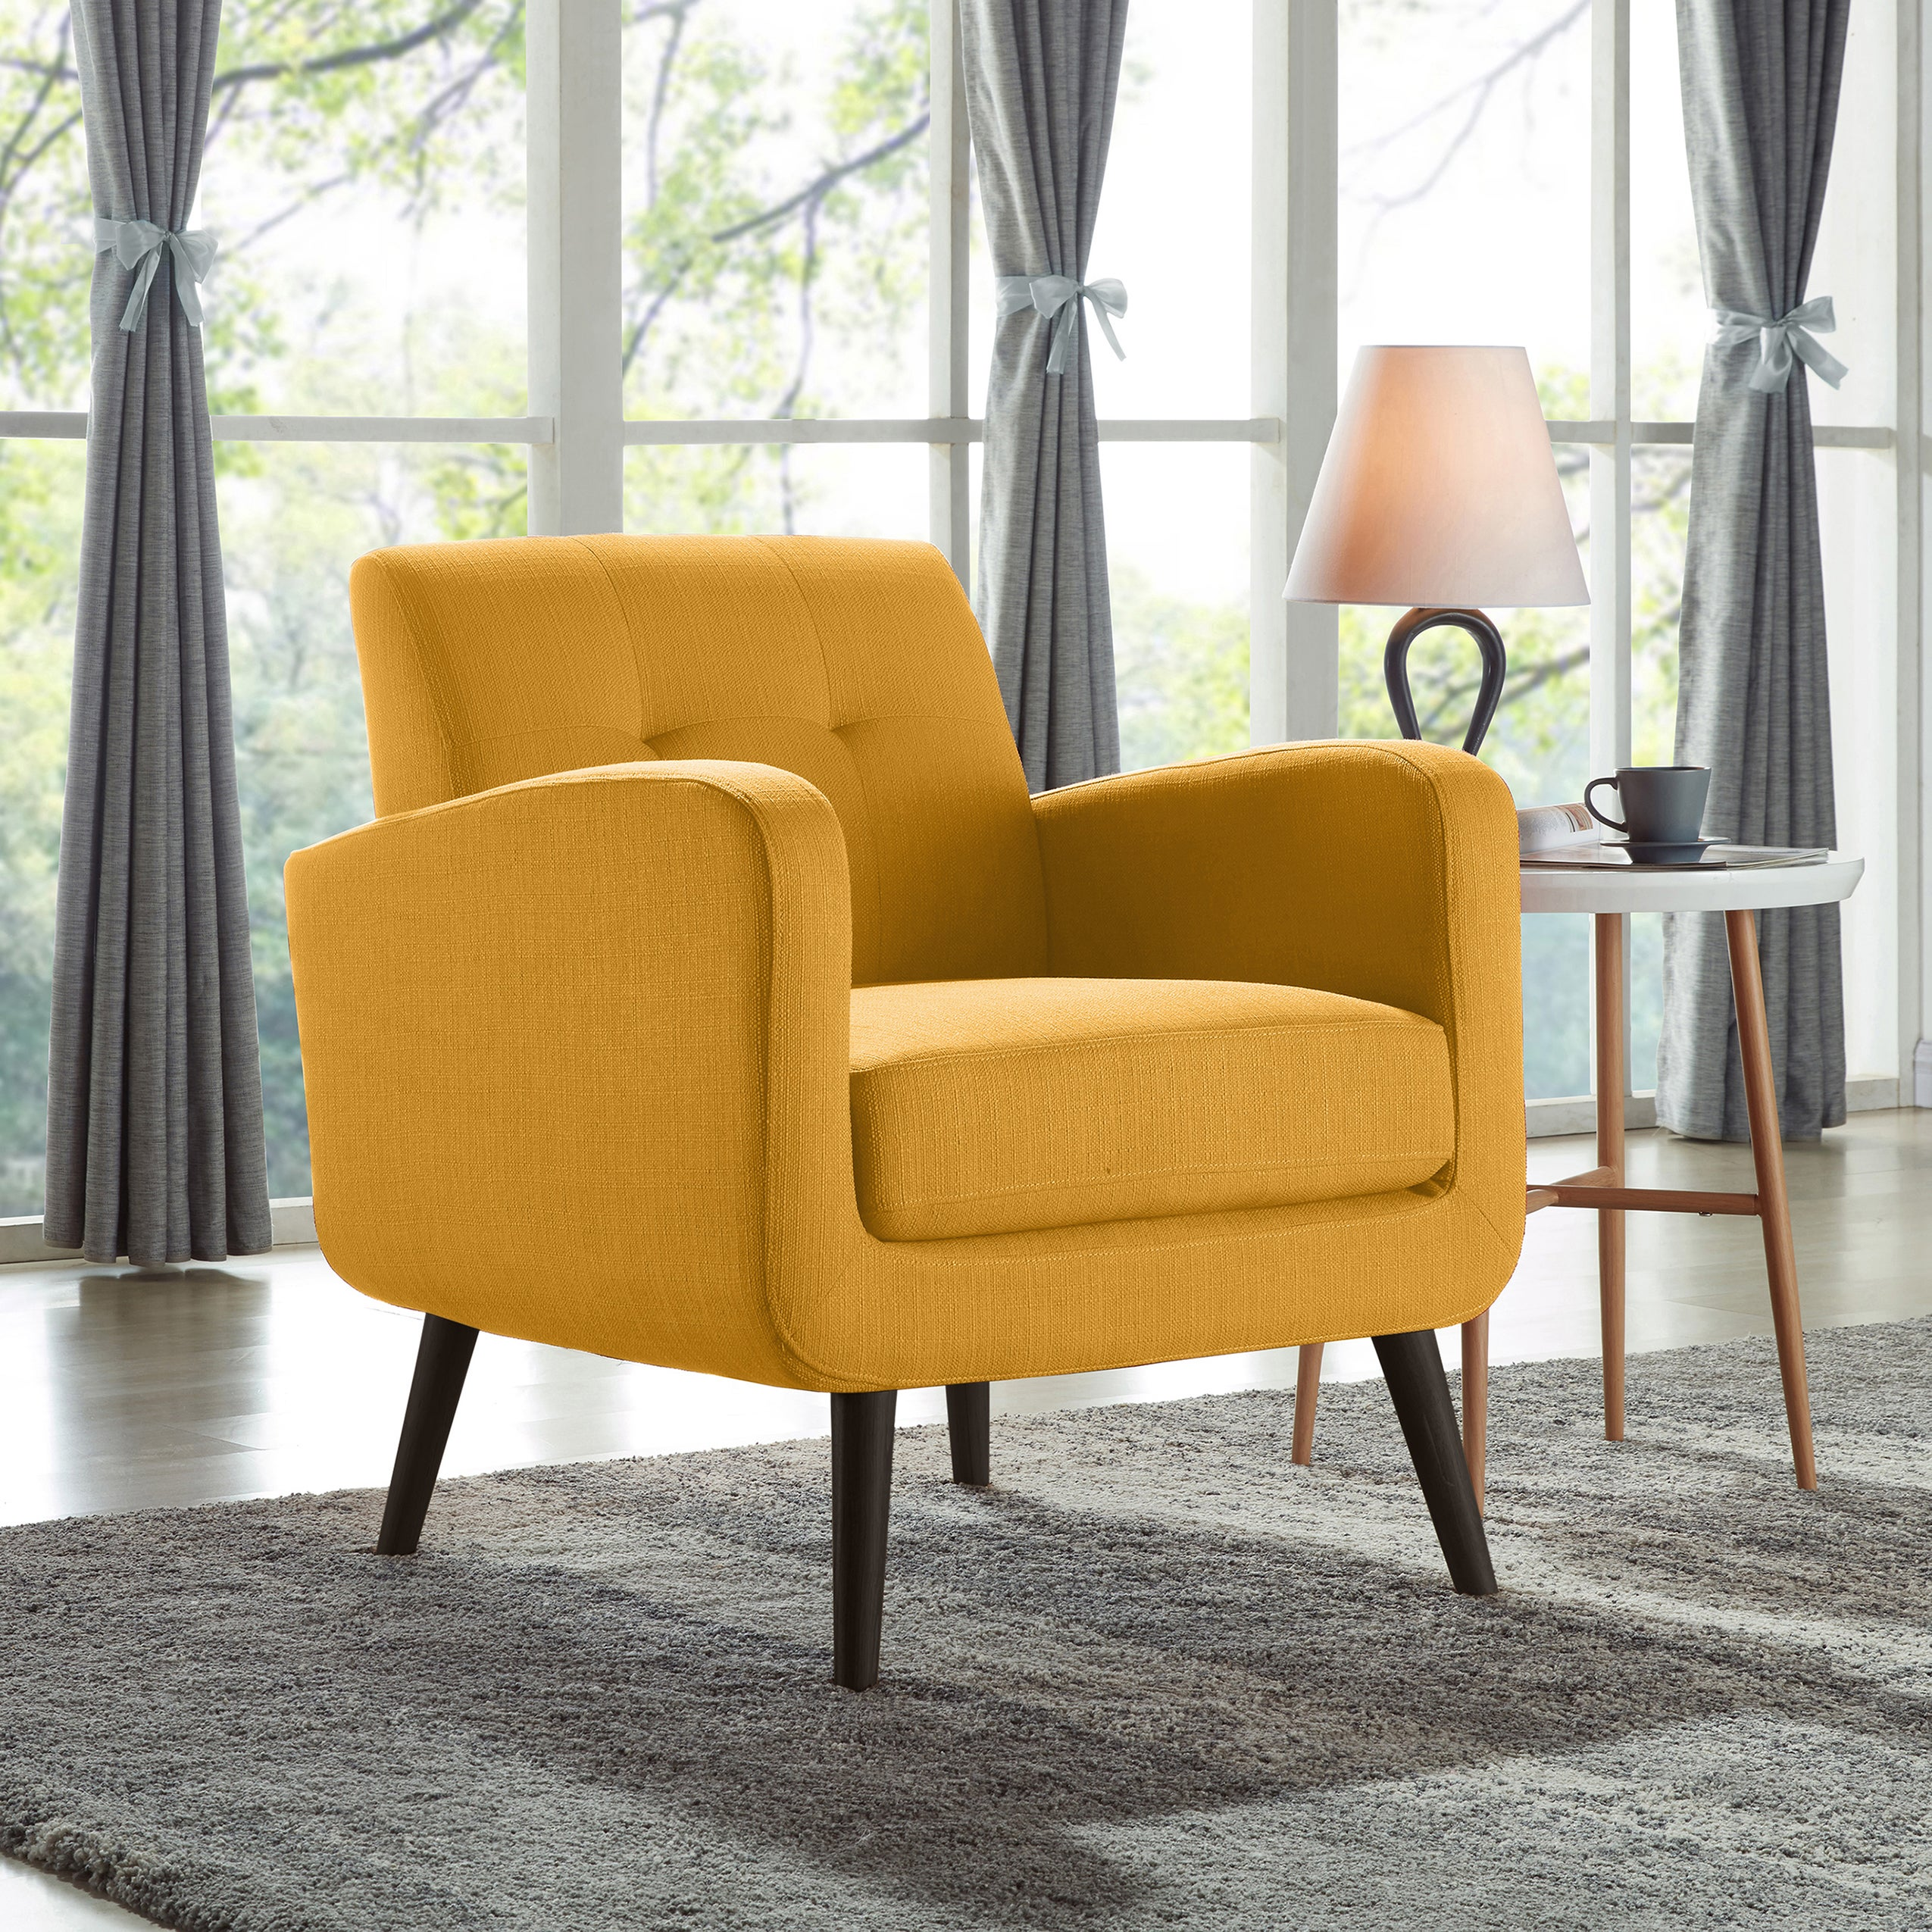 Carson Carrington Keflavik Mid-century Mustard Yellow Linen Arm Chair & Buy Yellow Living Room Chairs Online at Overstock | Our Best Living ...